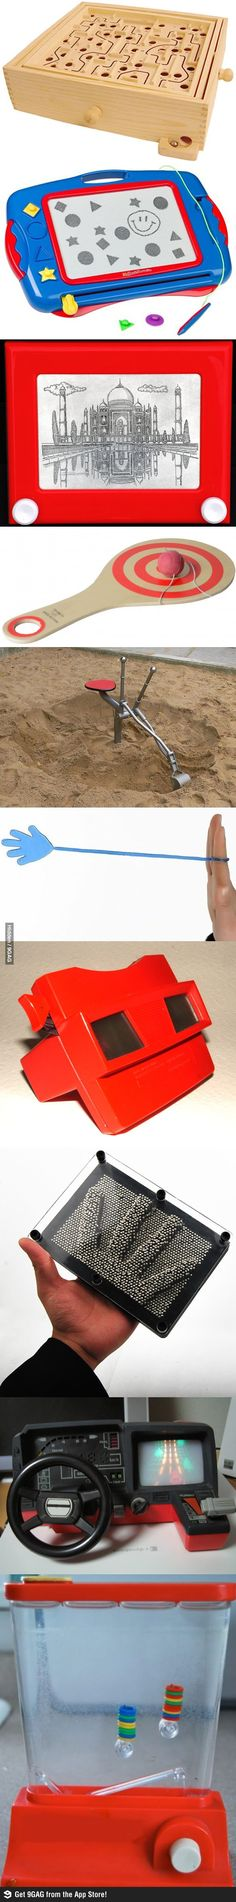 Awesome toys from our childhood